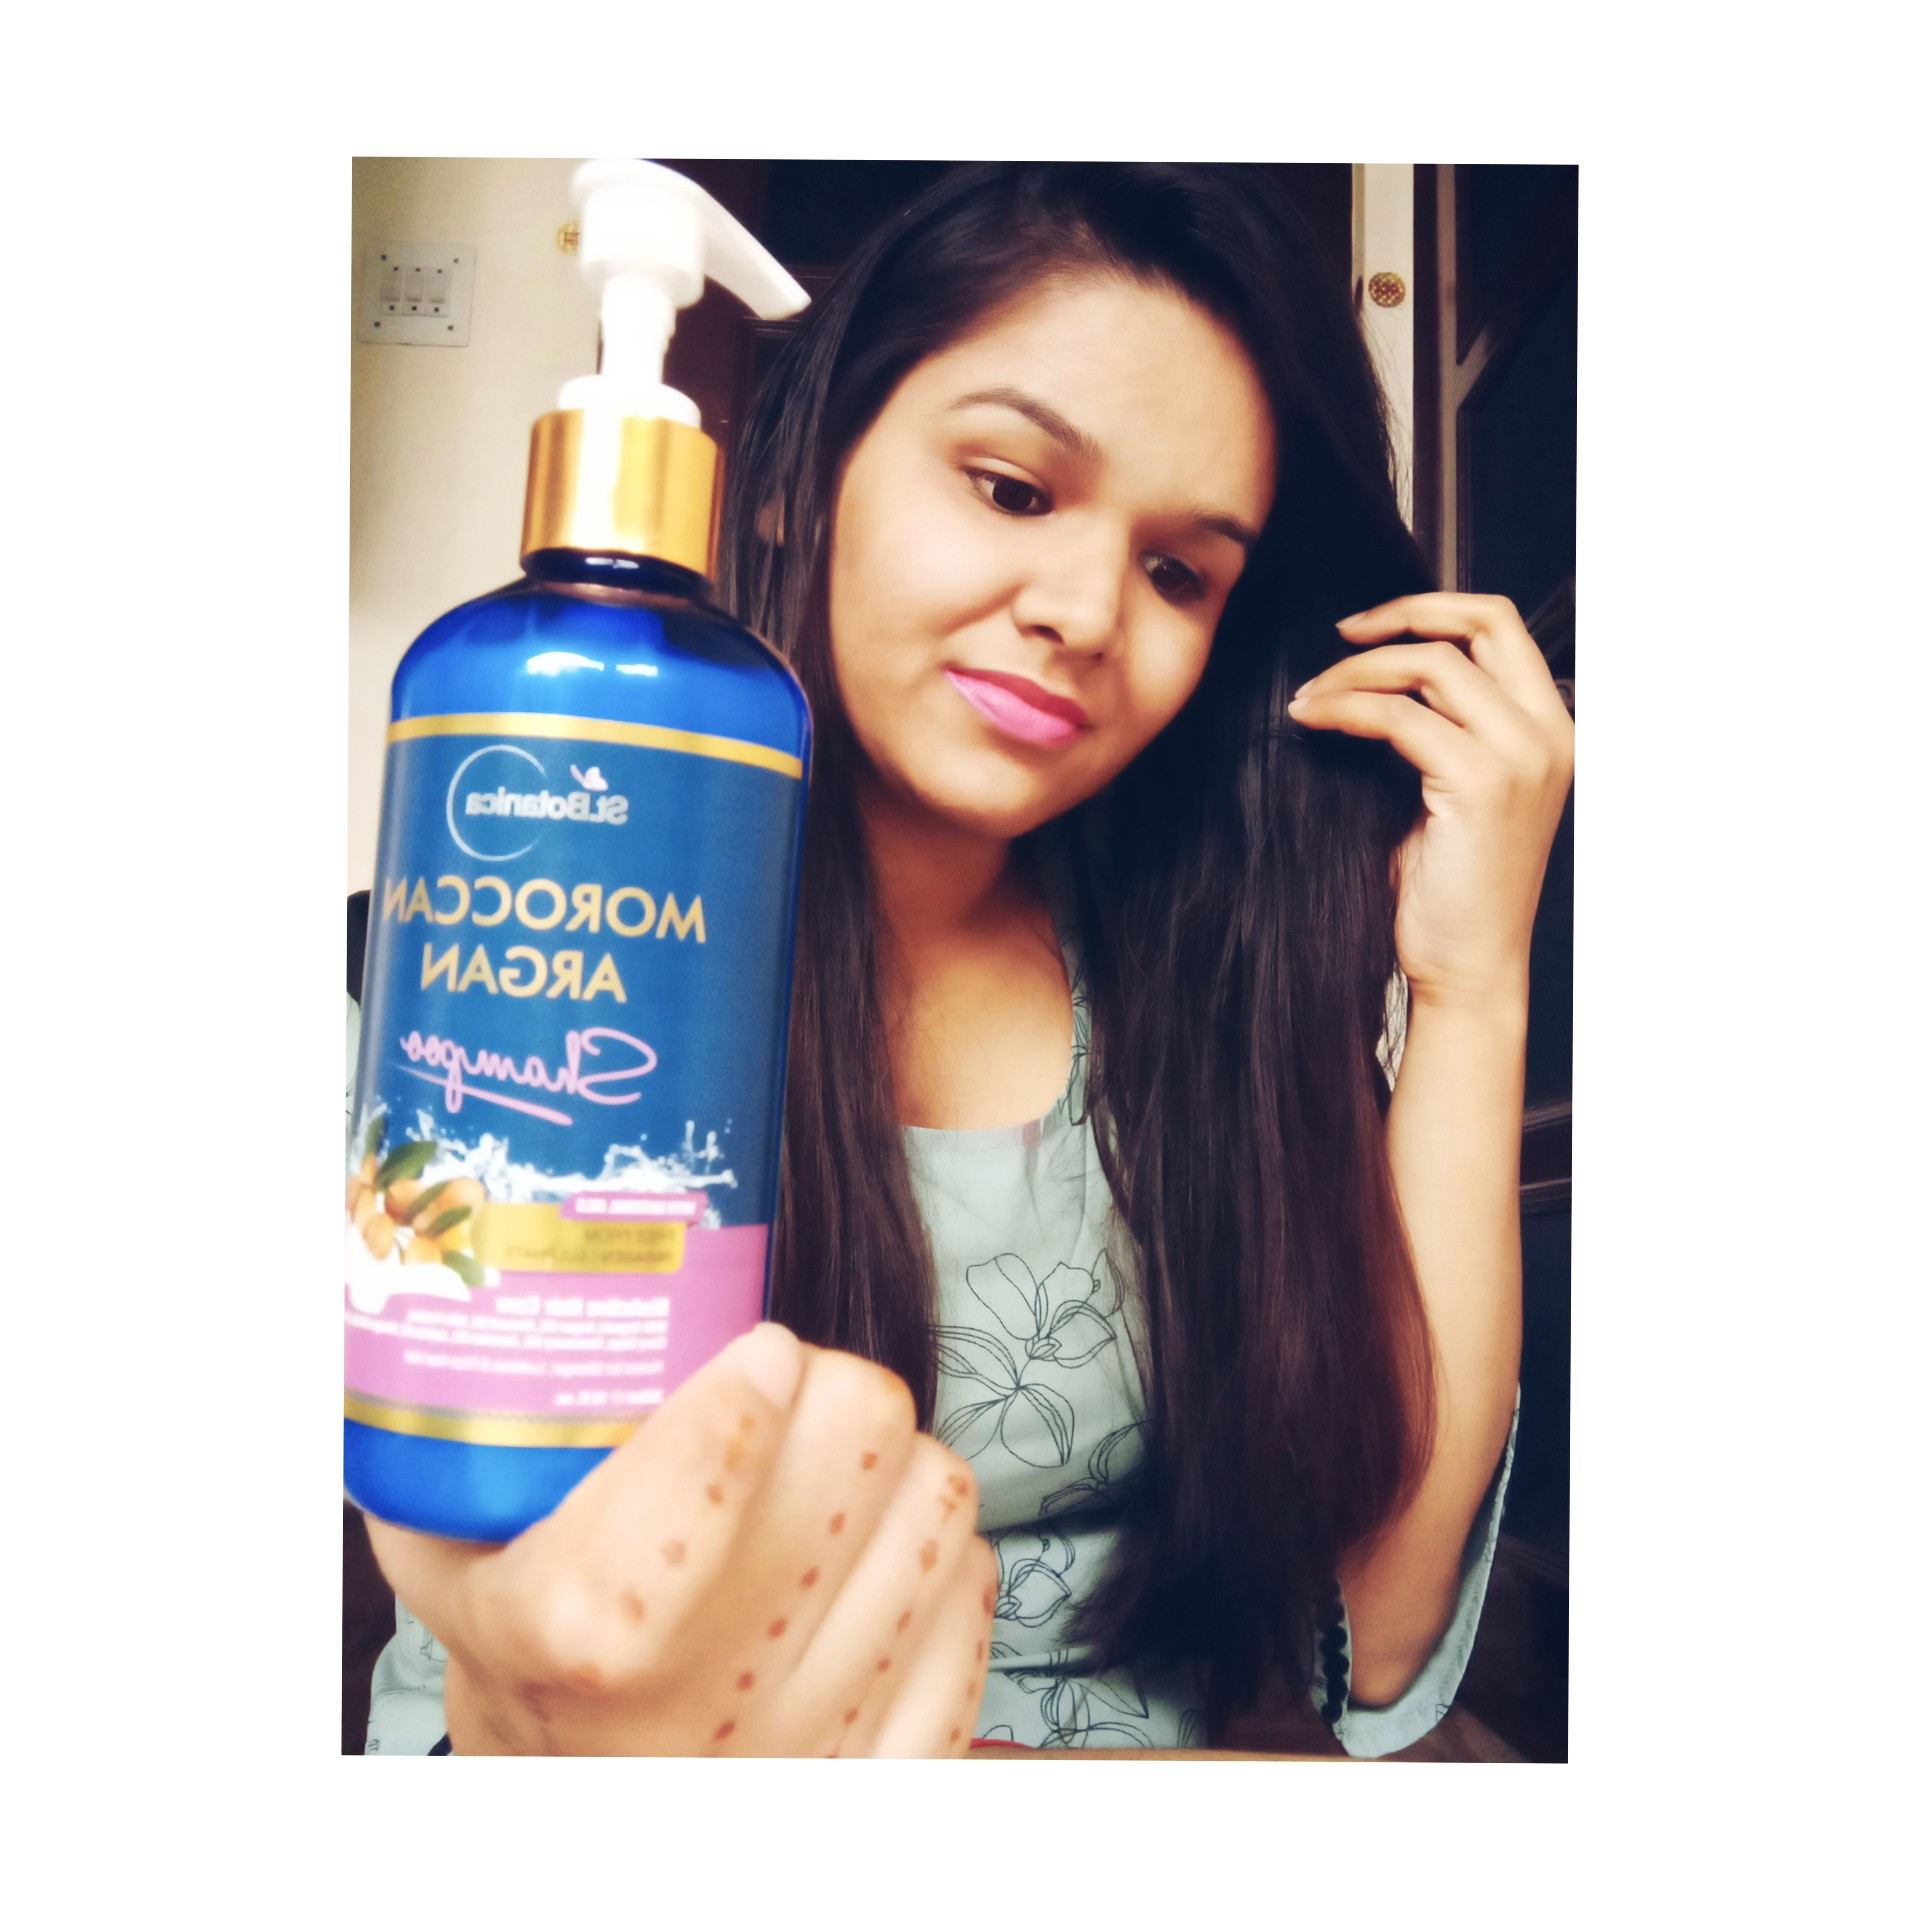 fab-review-So good and nice product-By _mansi_shekhawat_